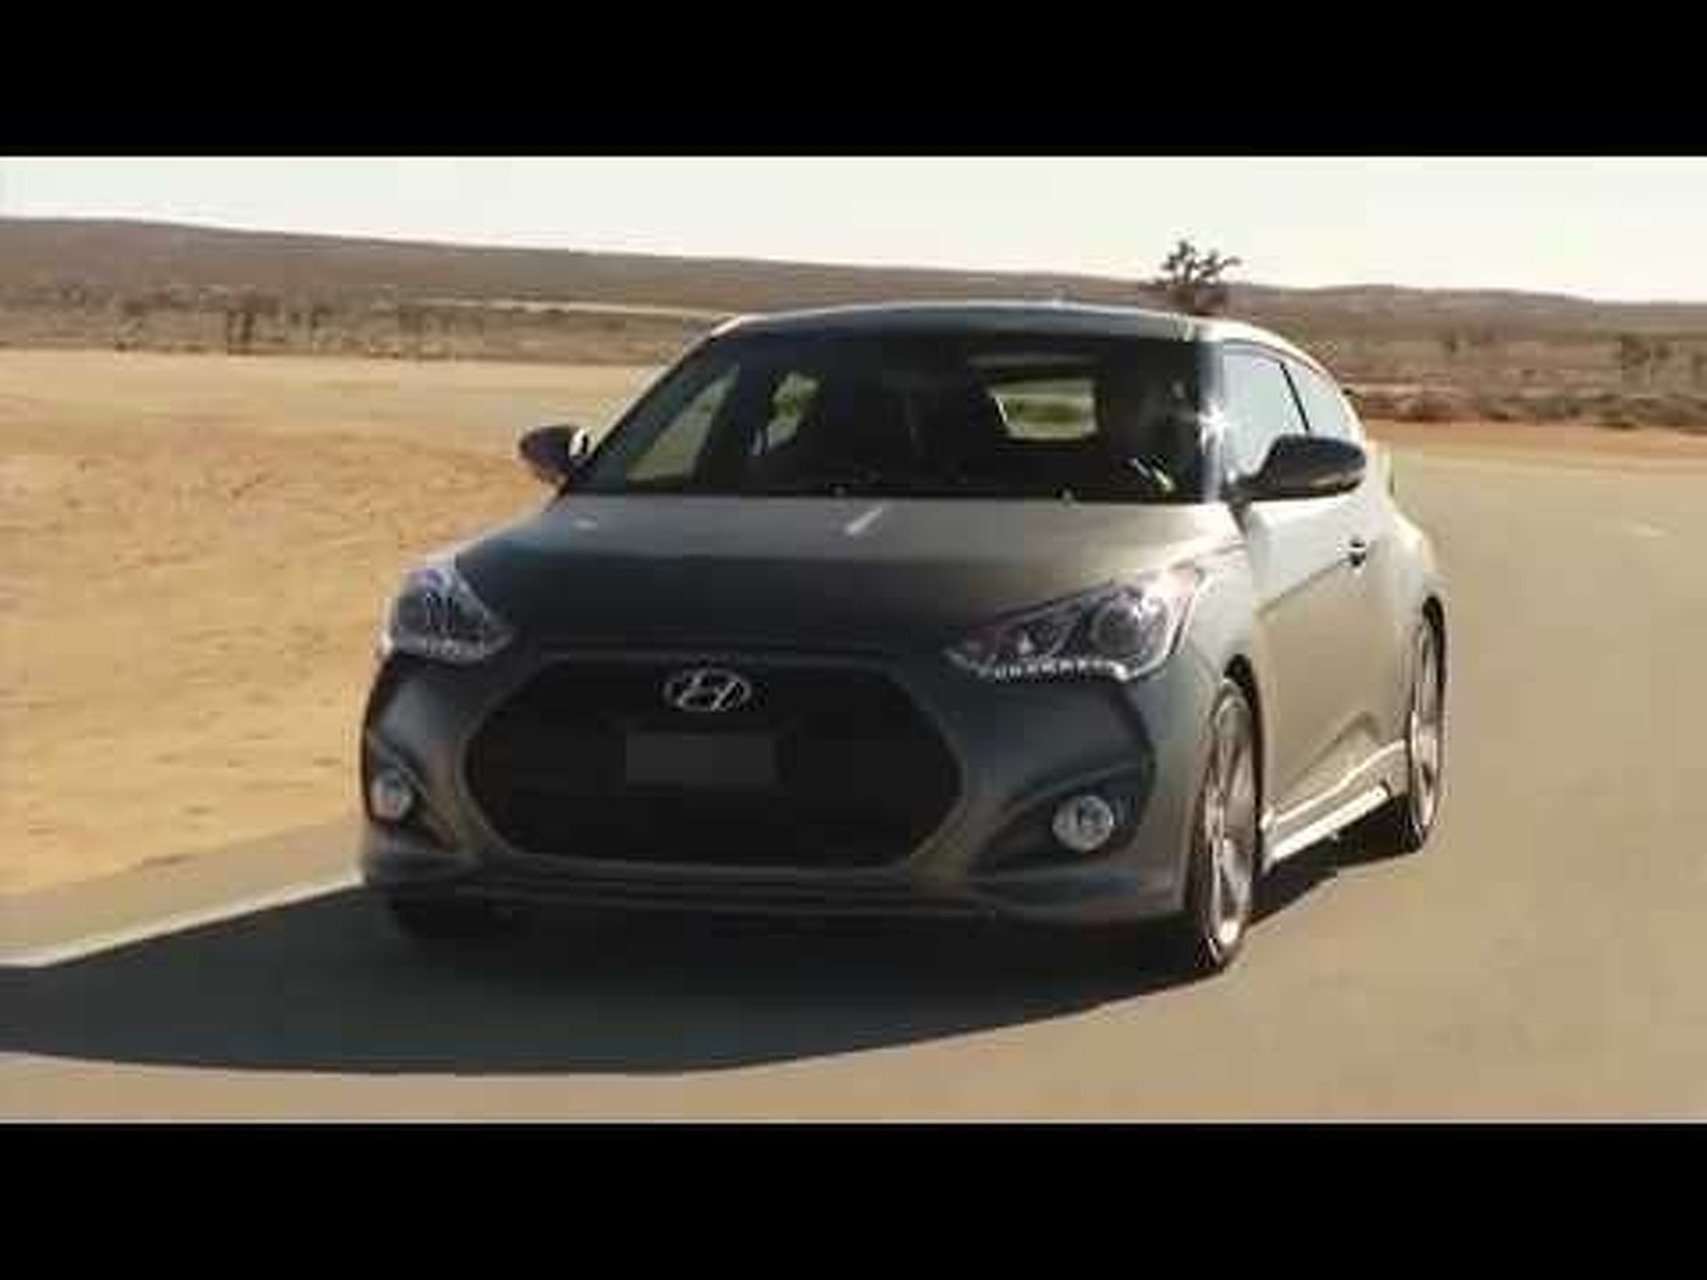 2013 Hyundai Veloster Turbo B-Roll